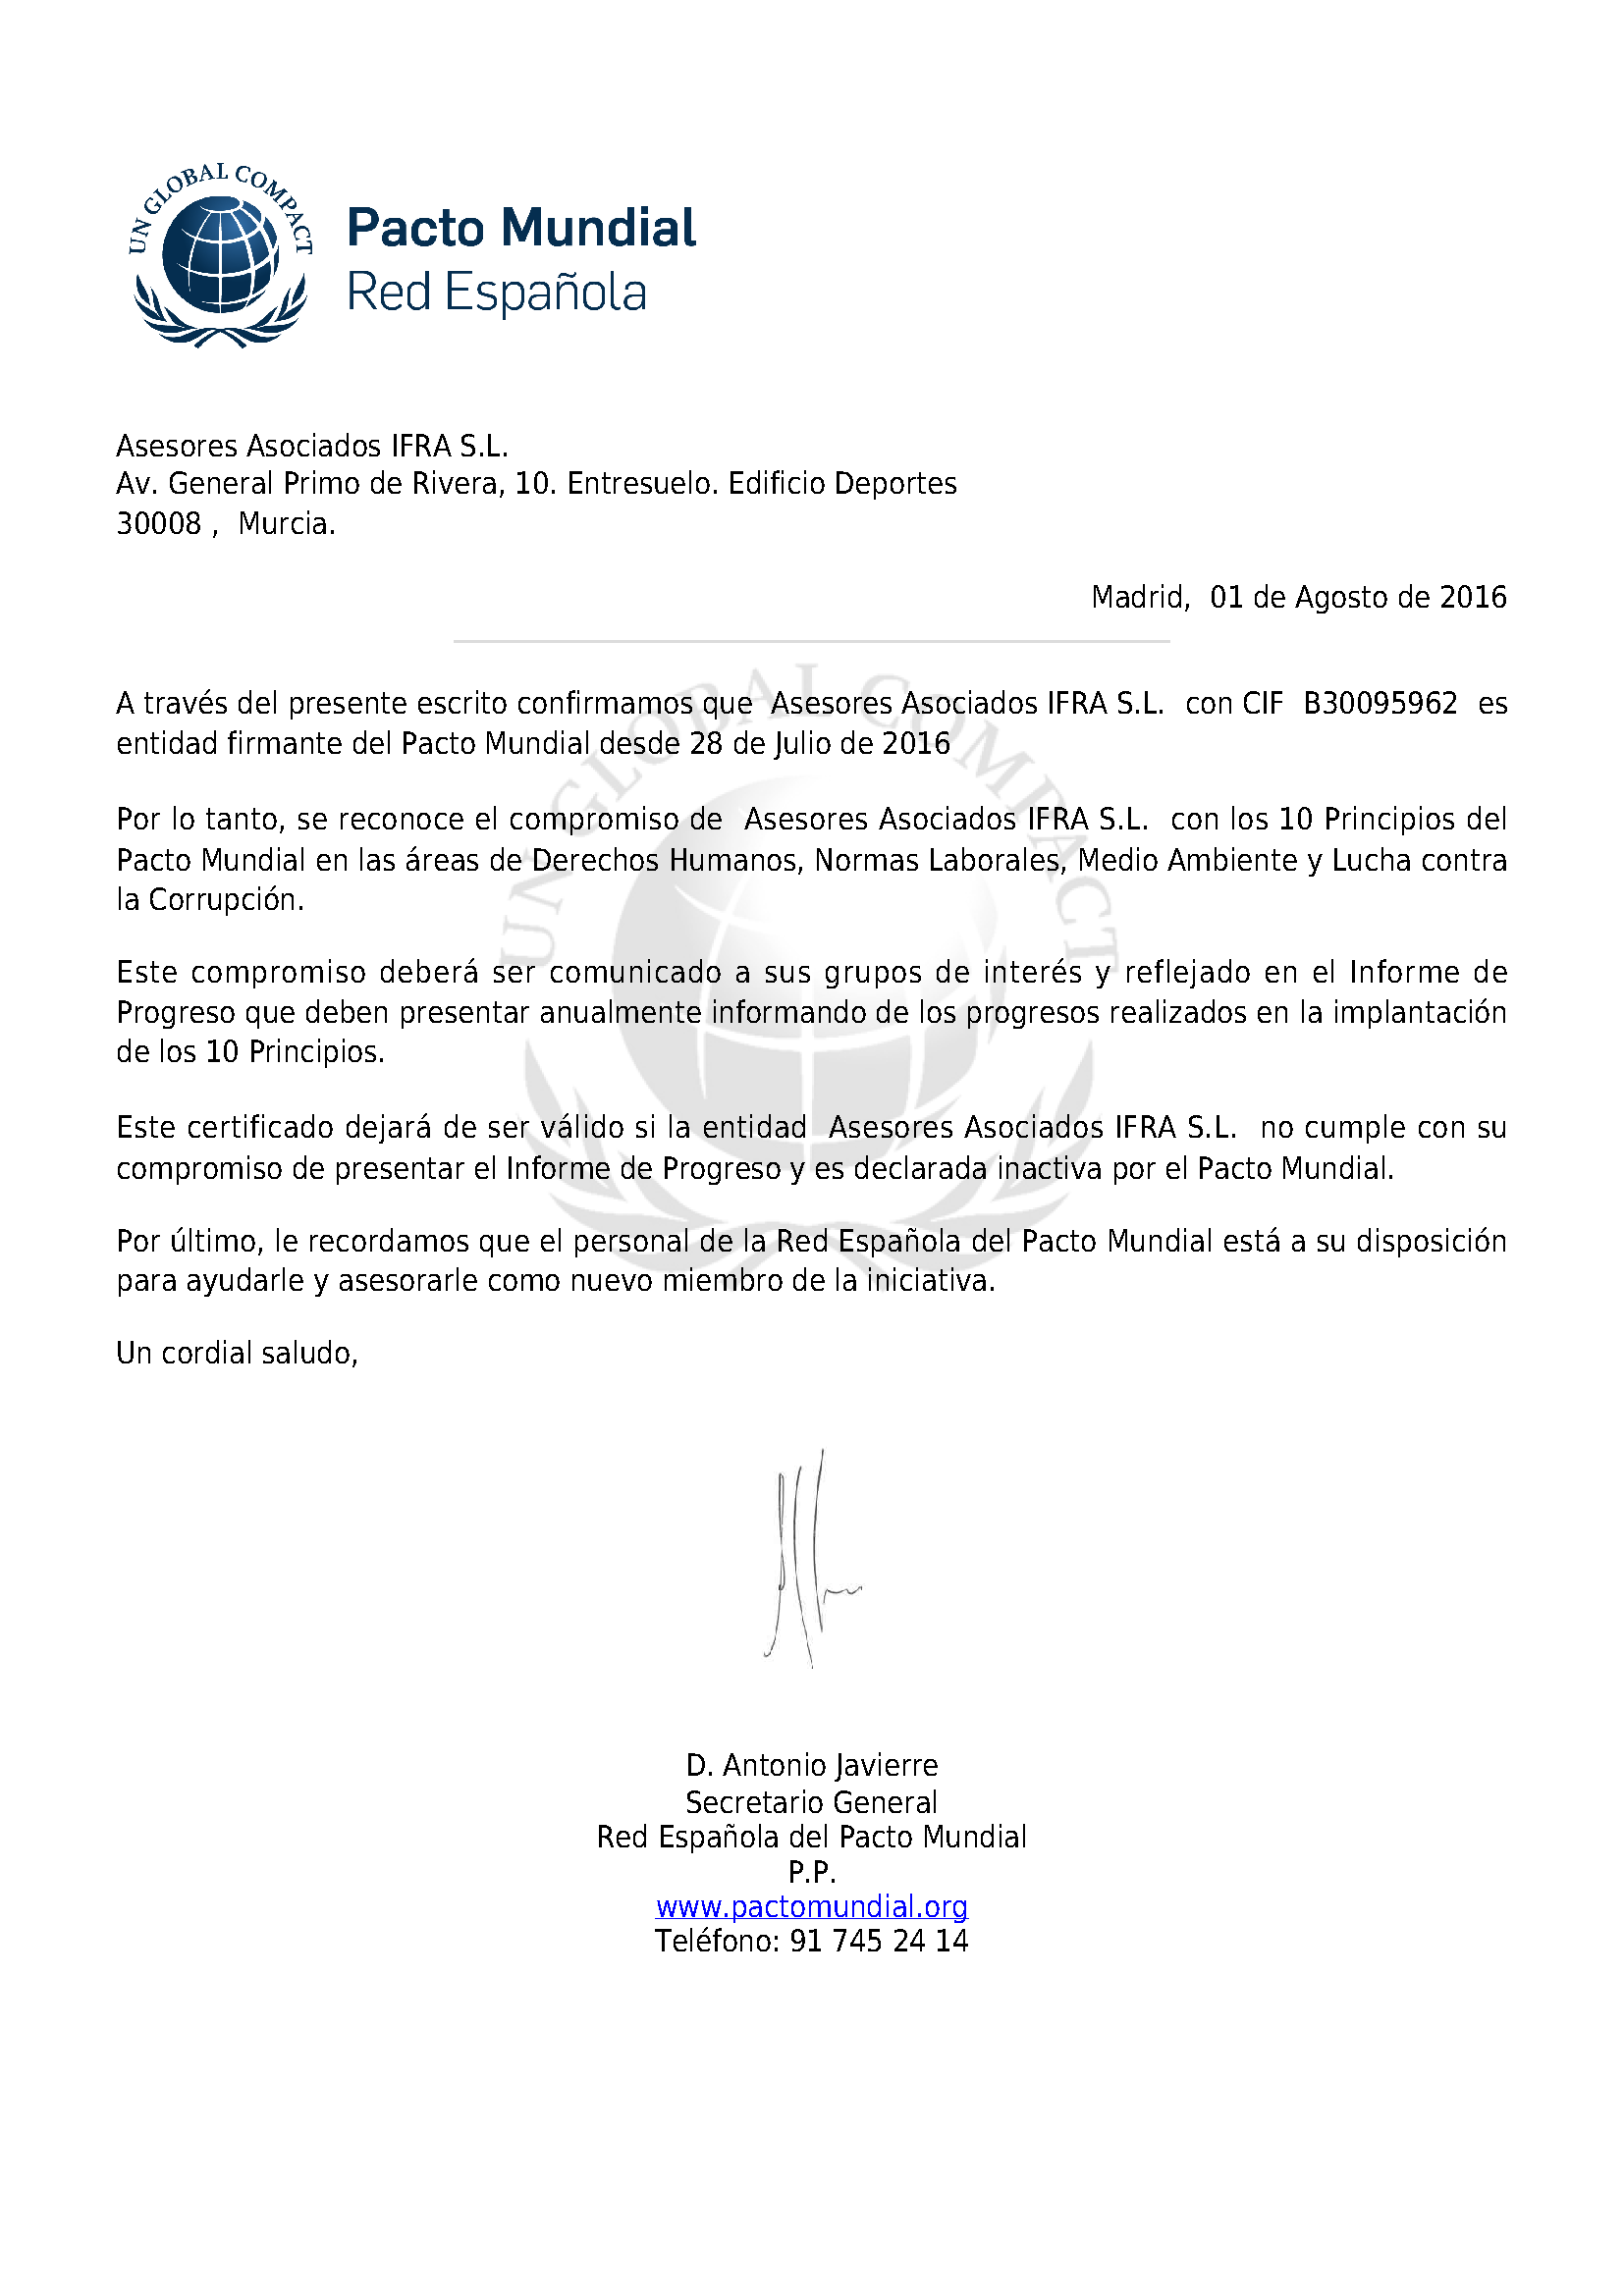 IFRA asesores se adhirere al Pacto Mundial